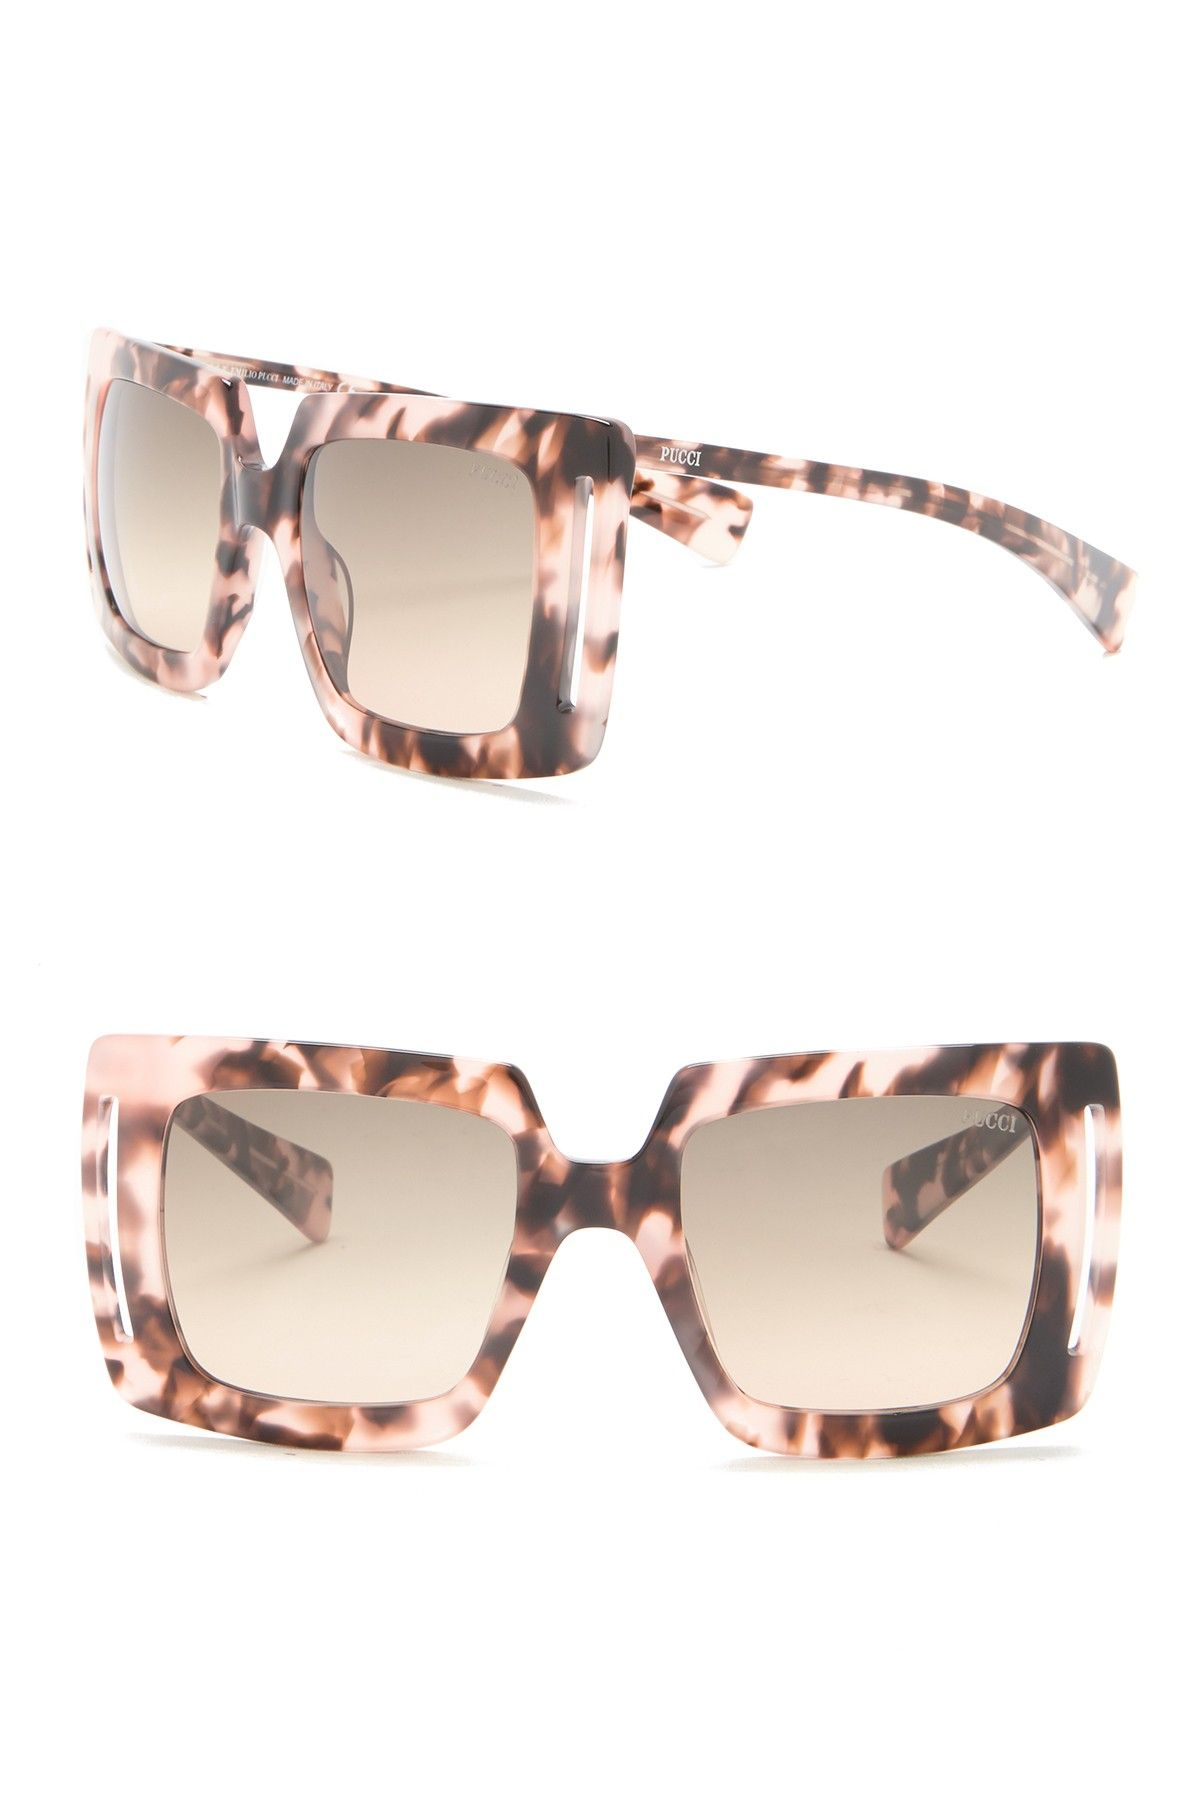 7fe2cfba8cae Emilio Pucci - 51mm Oversized Square Acetate Sunglasses is now 82% off.  Free Shipping on orders over $100.